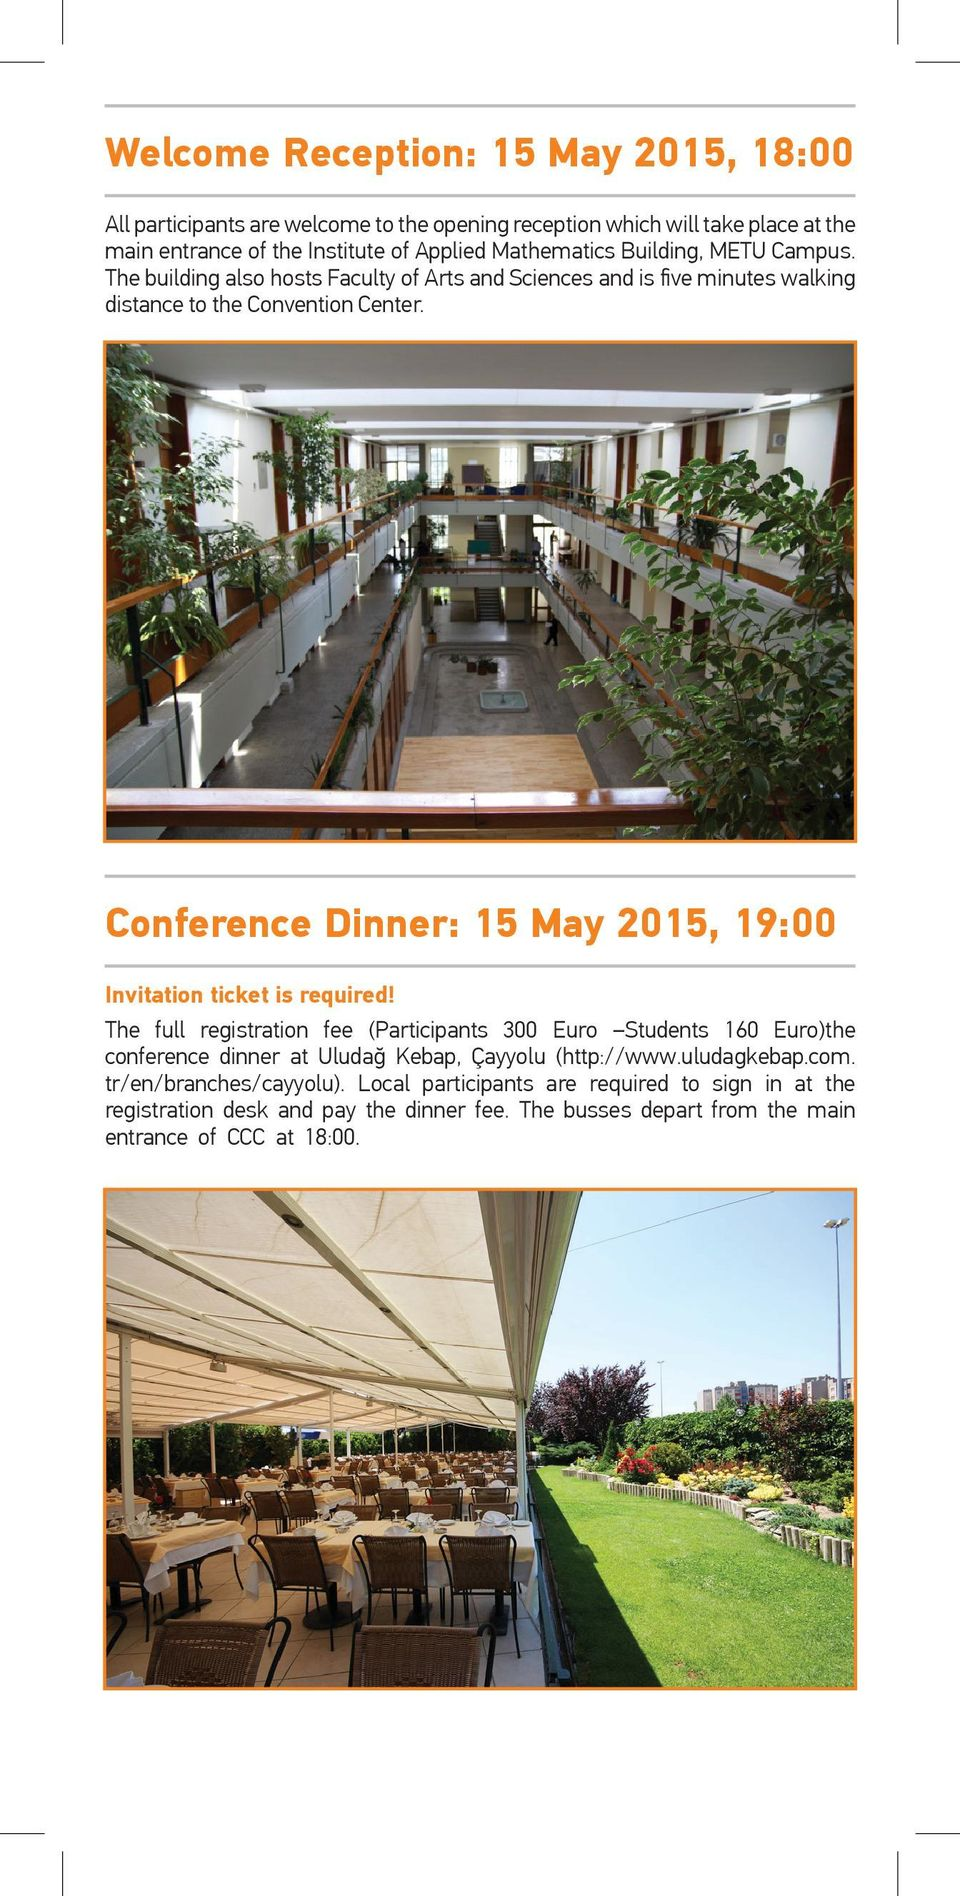 Conference Dinner: 15 May 2015, 19:00 Invitation ticket is required!